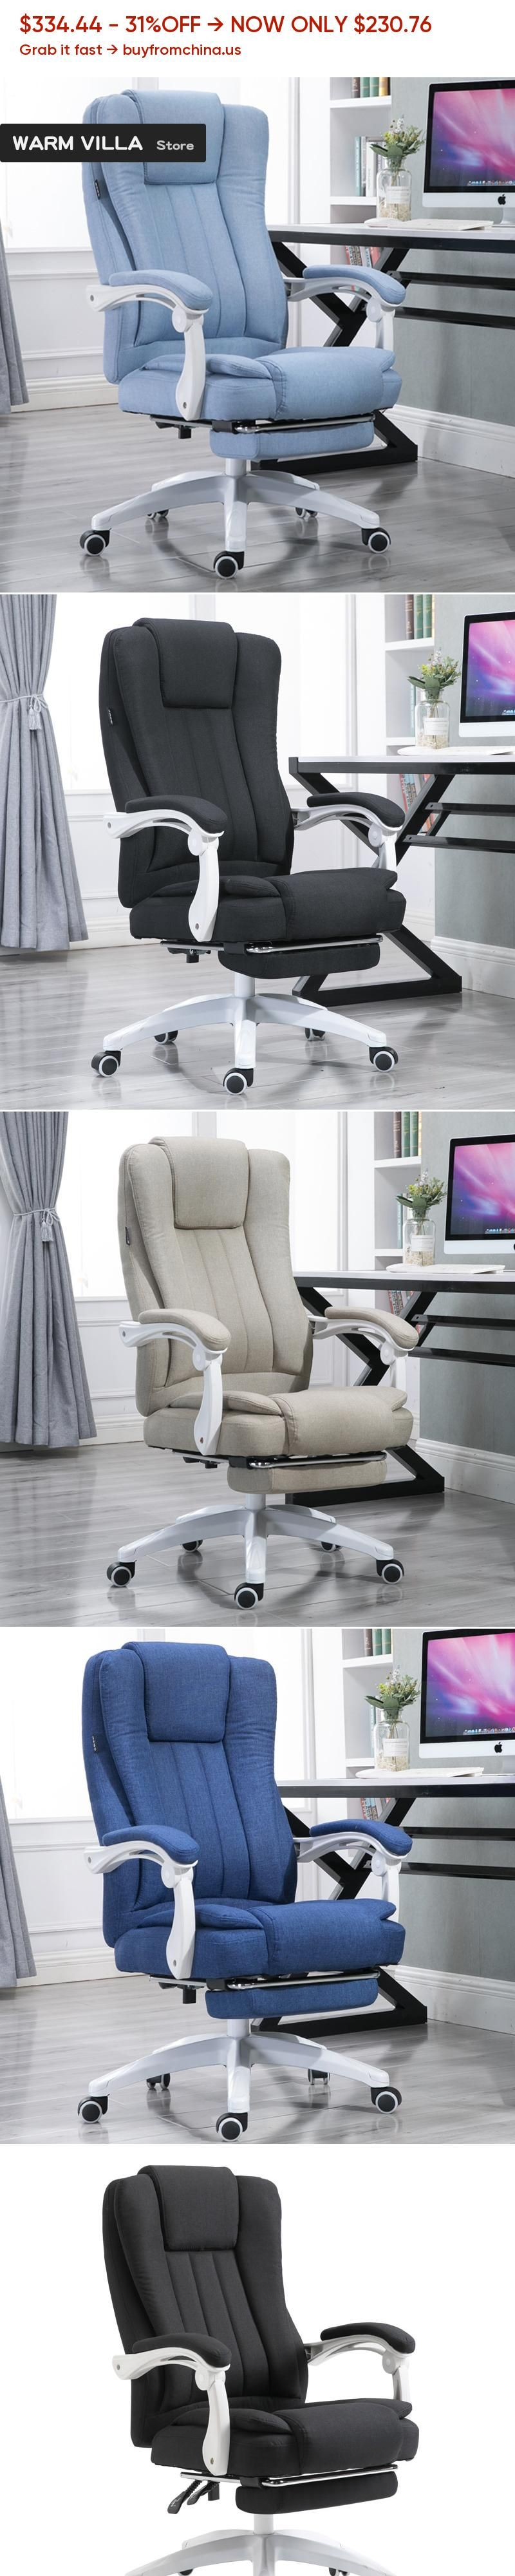 Cheap & High Quality Office Furniture Recommendation ...